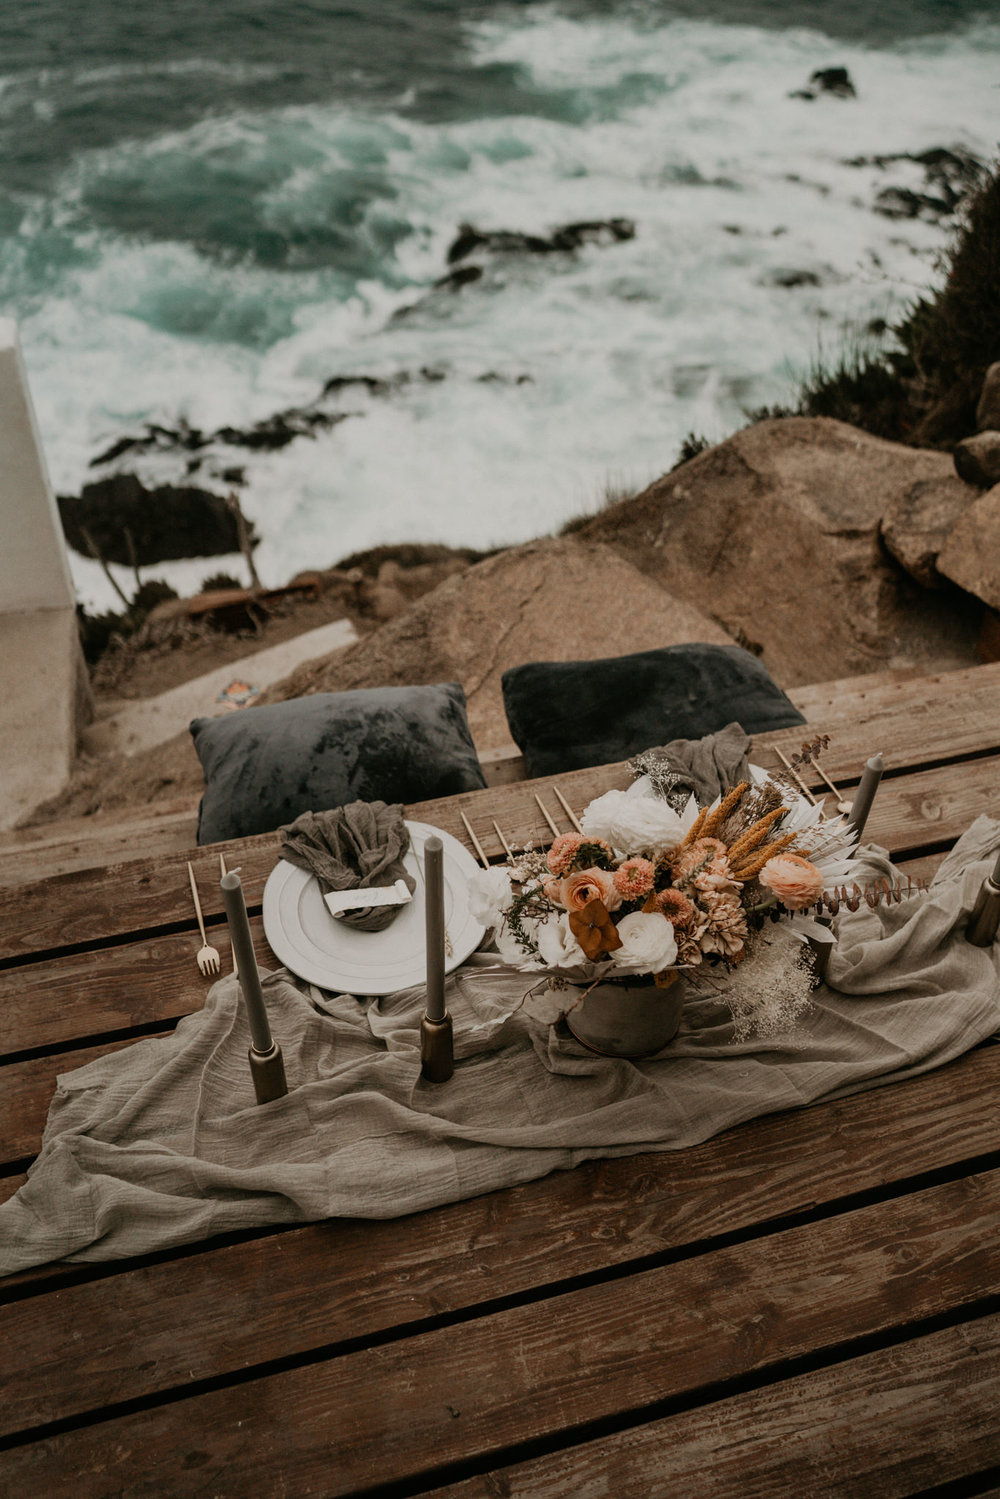 Big Sur Elopement photography of cake and romantic set up by be beach on cliff